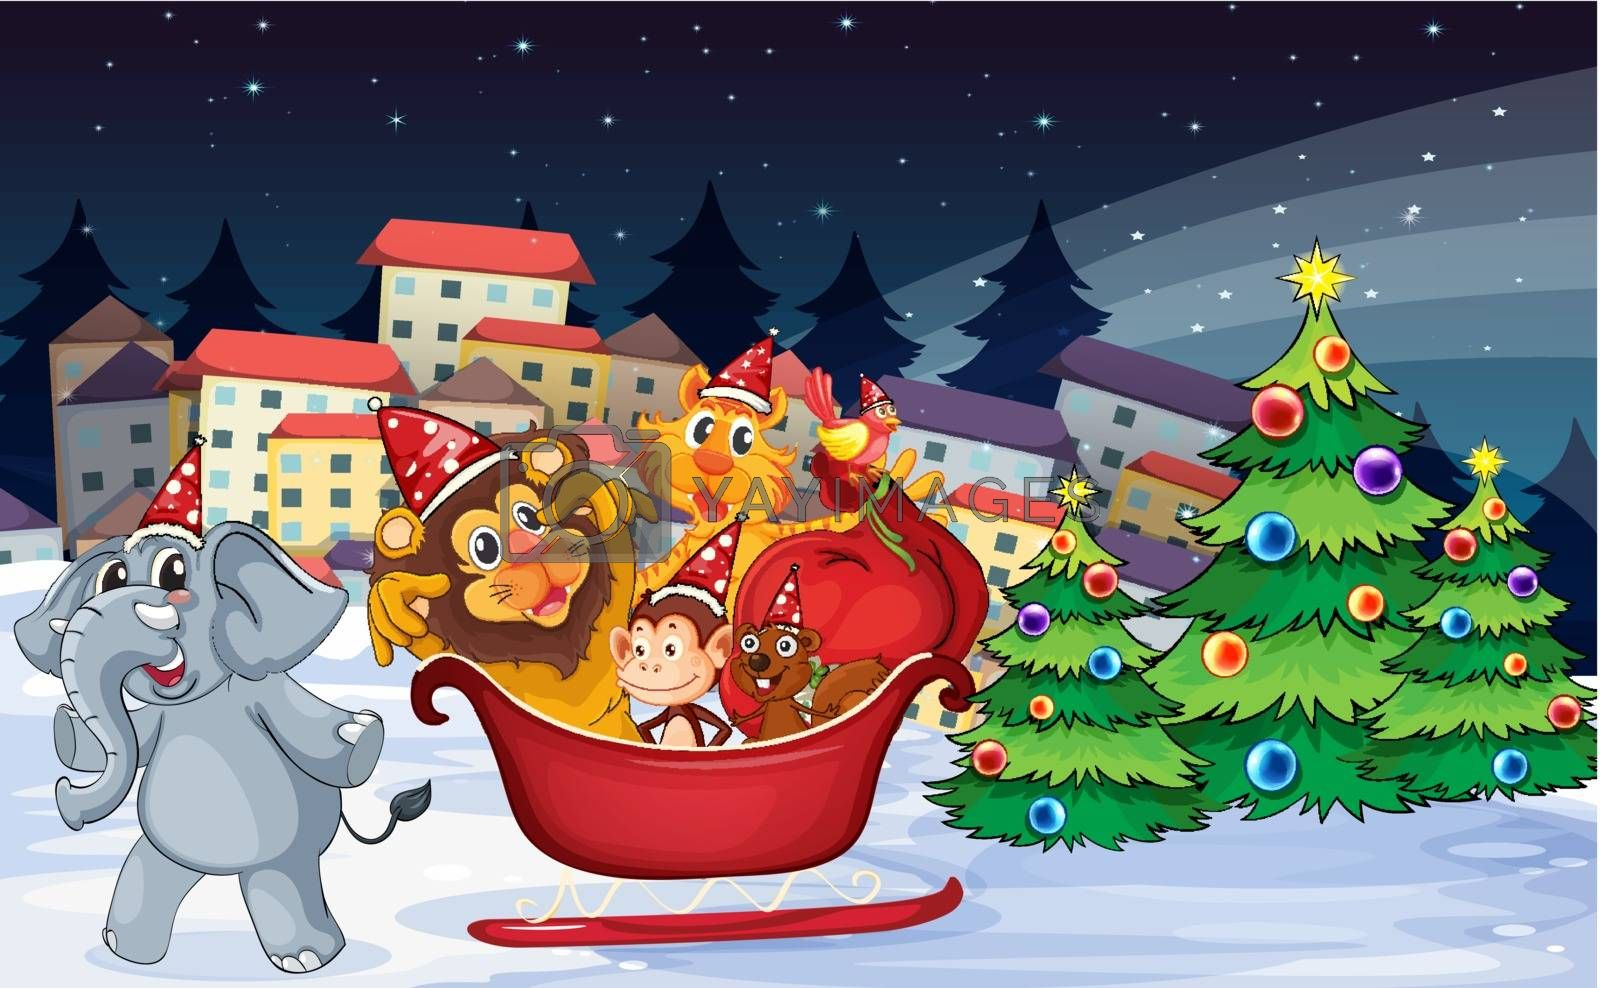 Illustration of a village with playful animals near the christmas trees